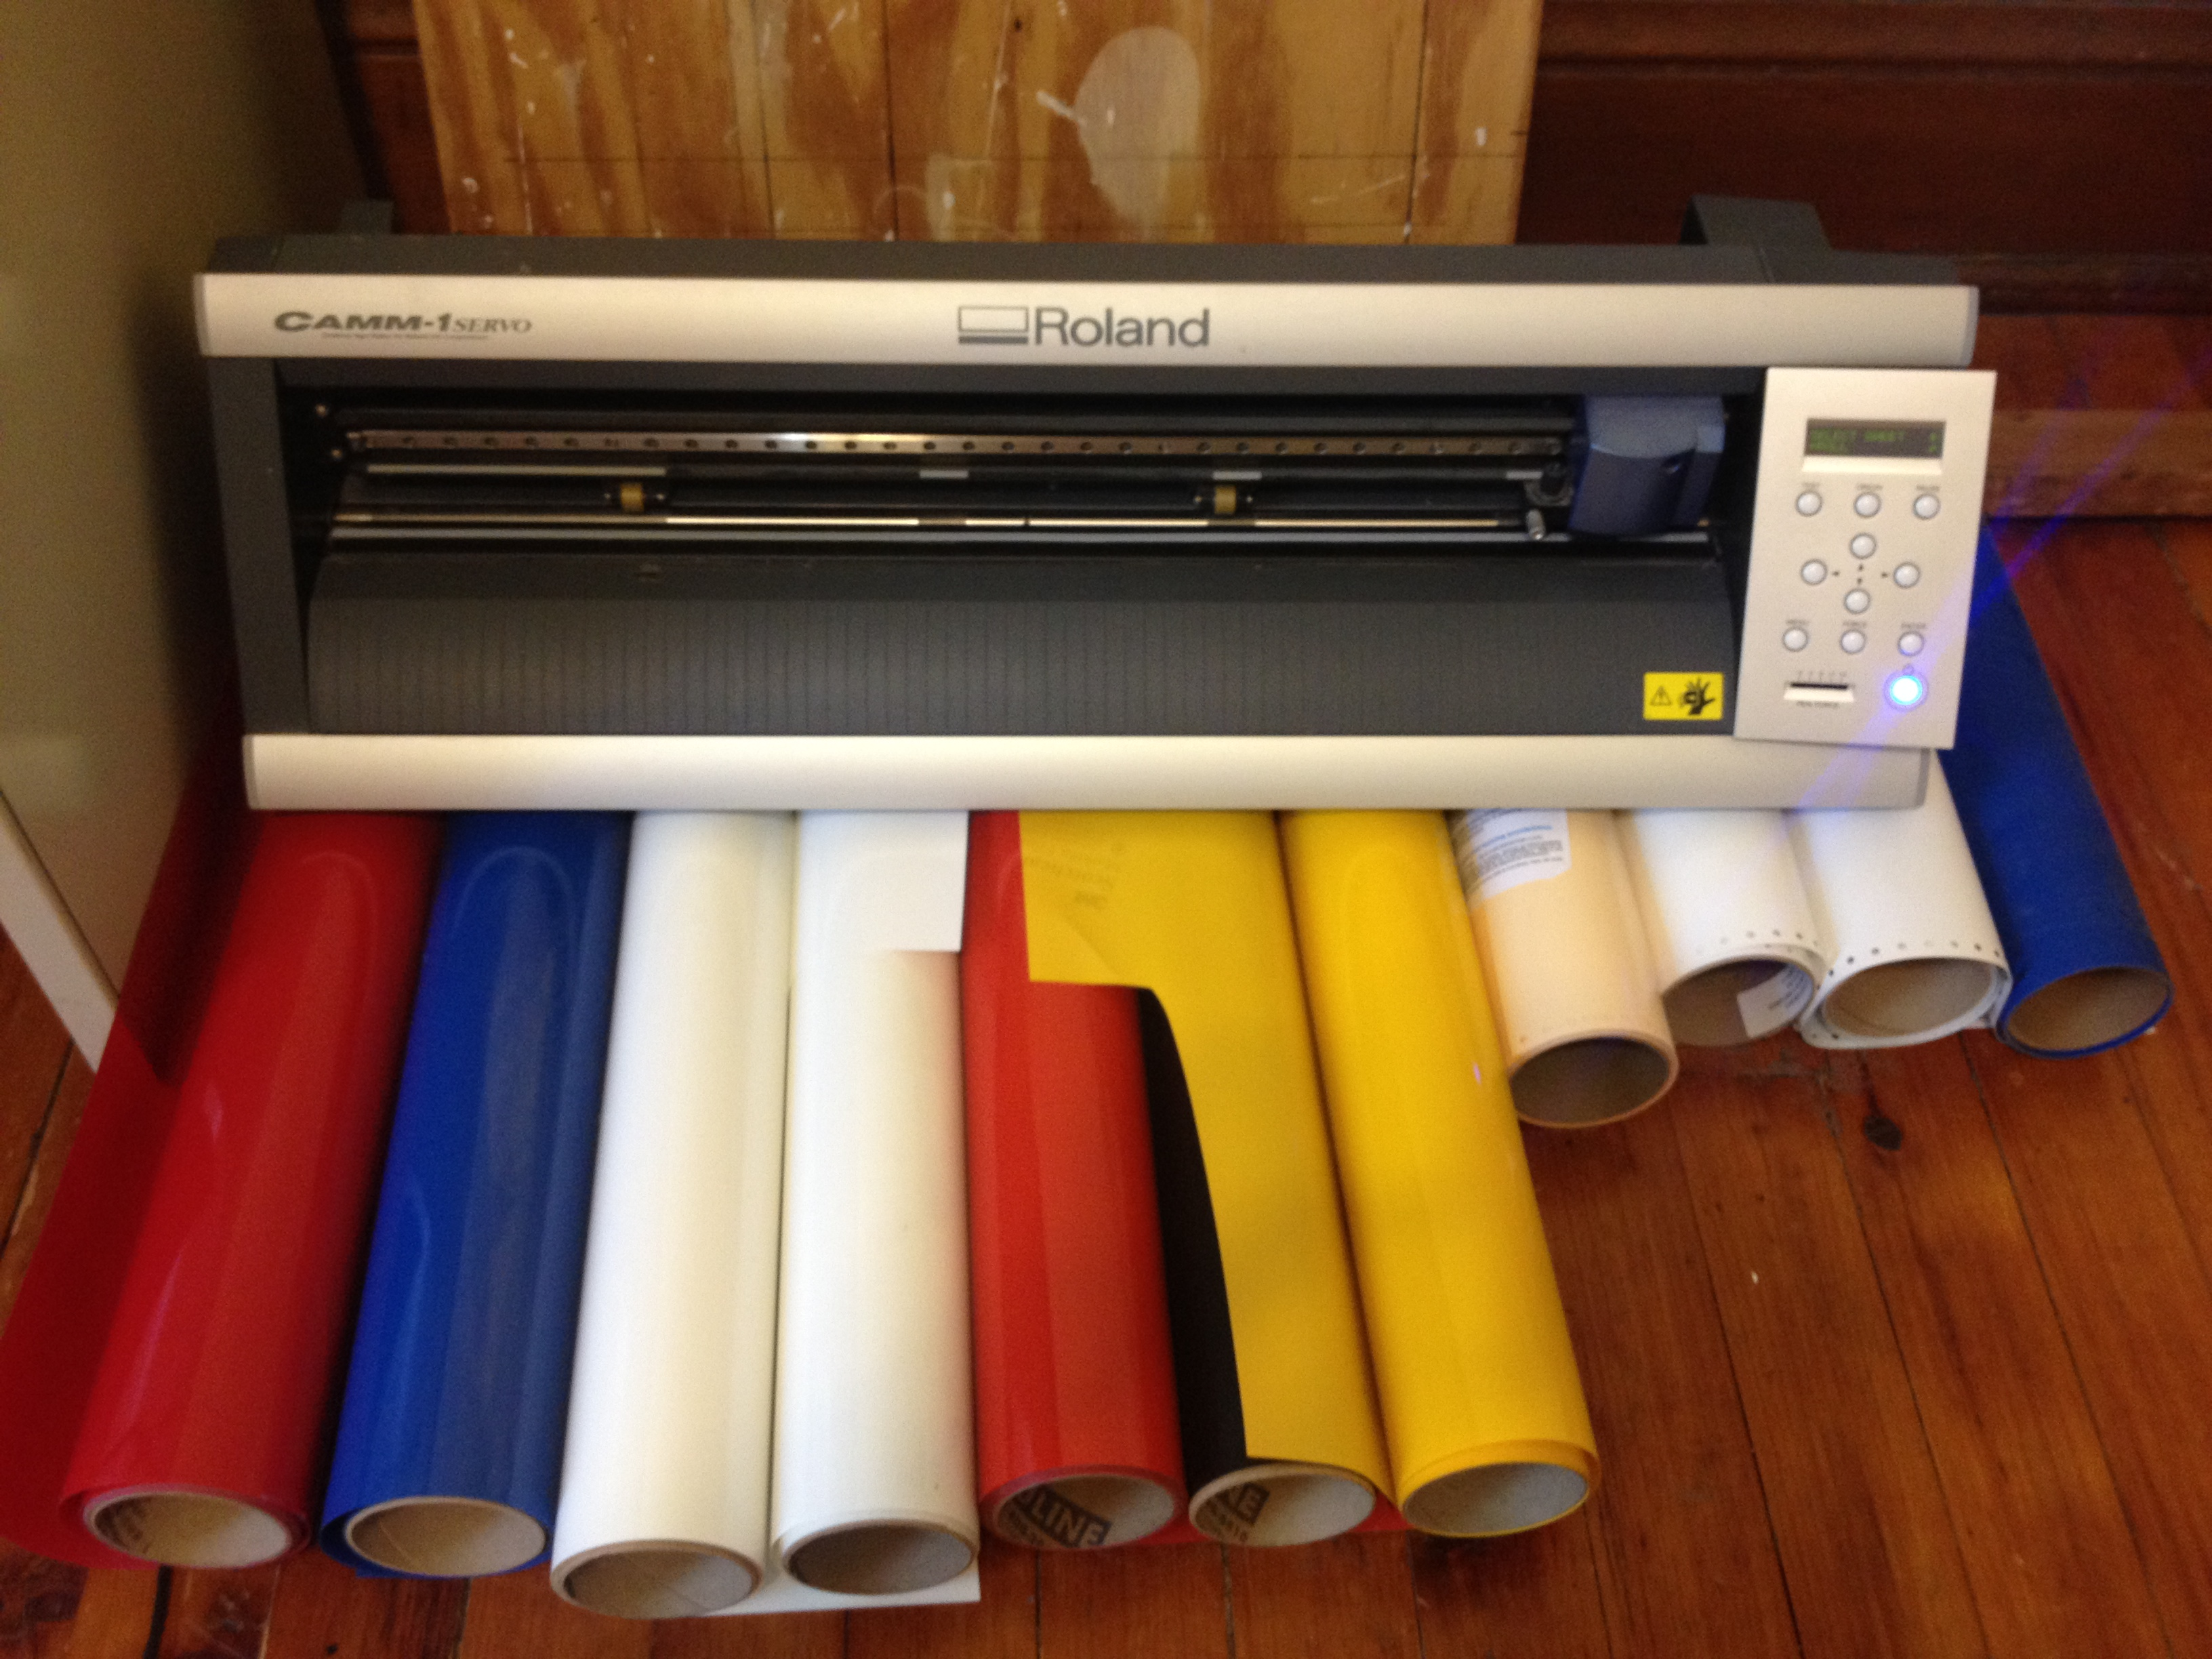 How to Replace Roland GX-24 Cutting Strip? - T-Shirt Forums